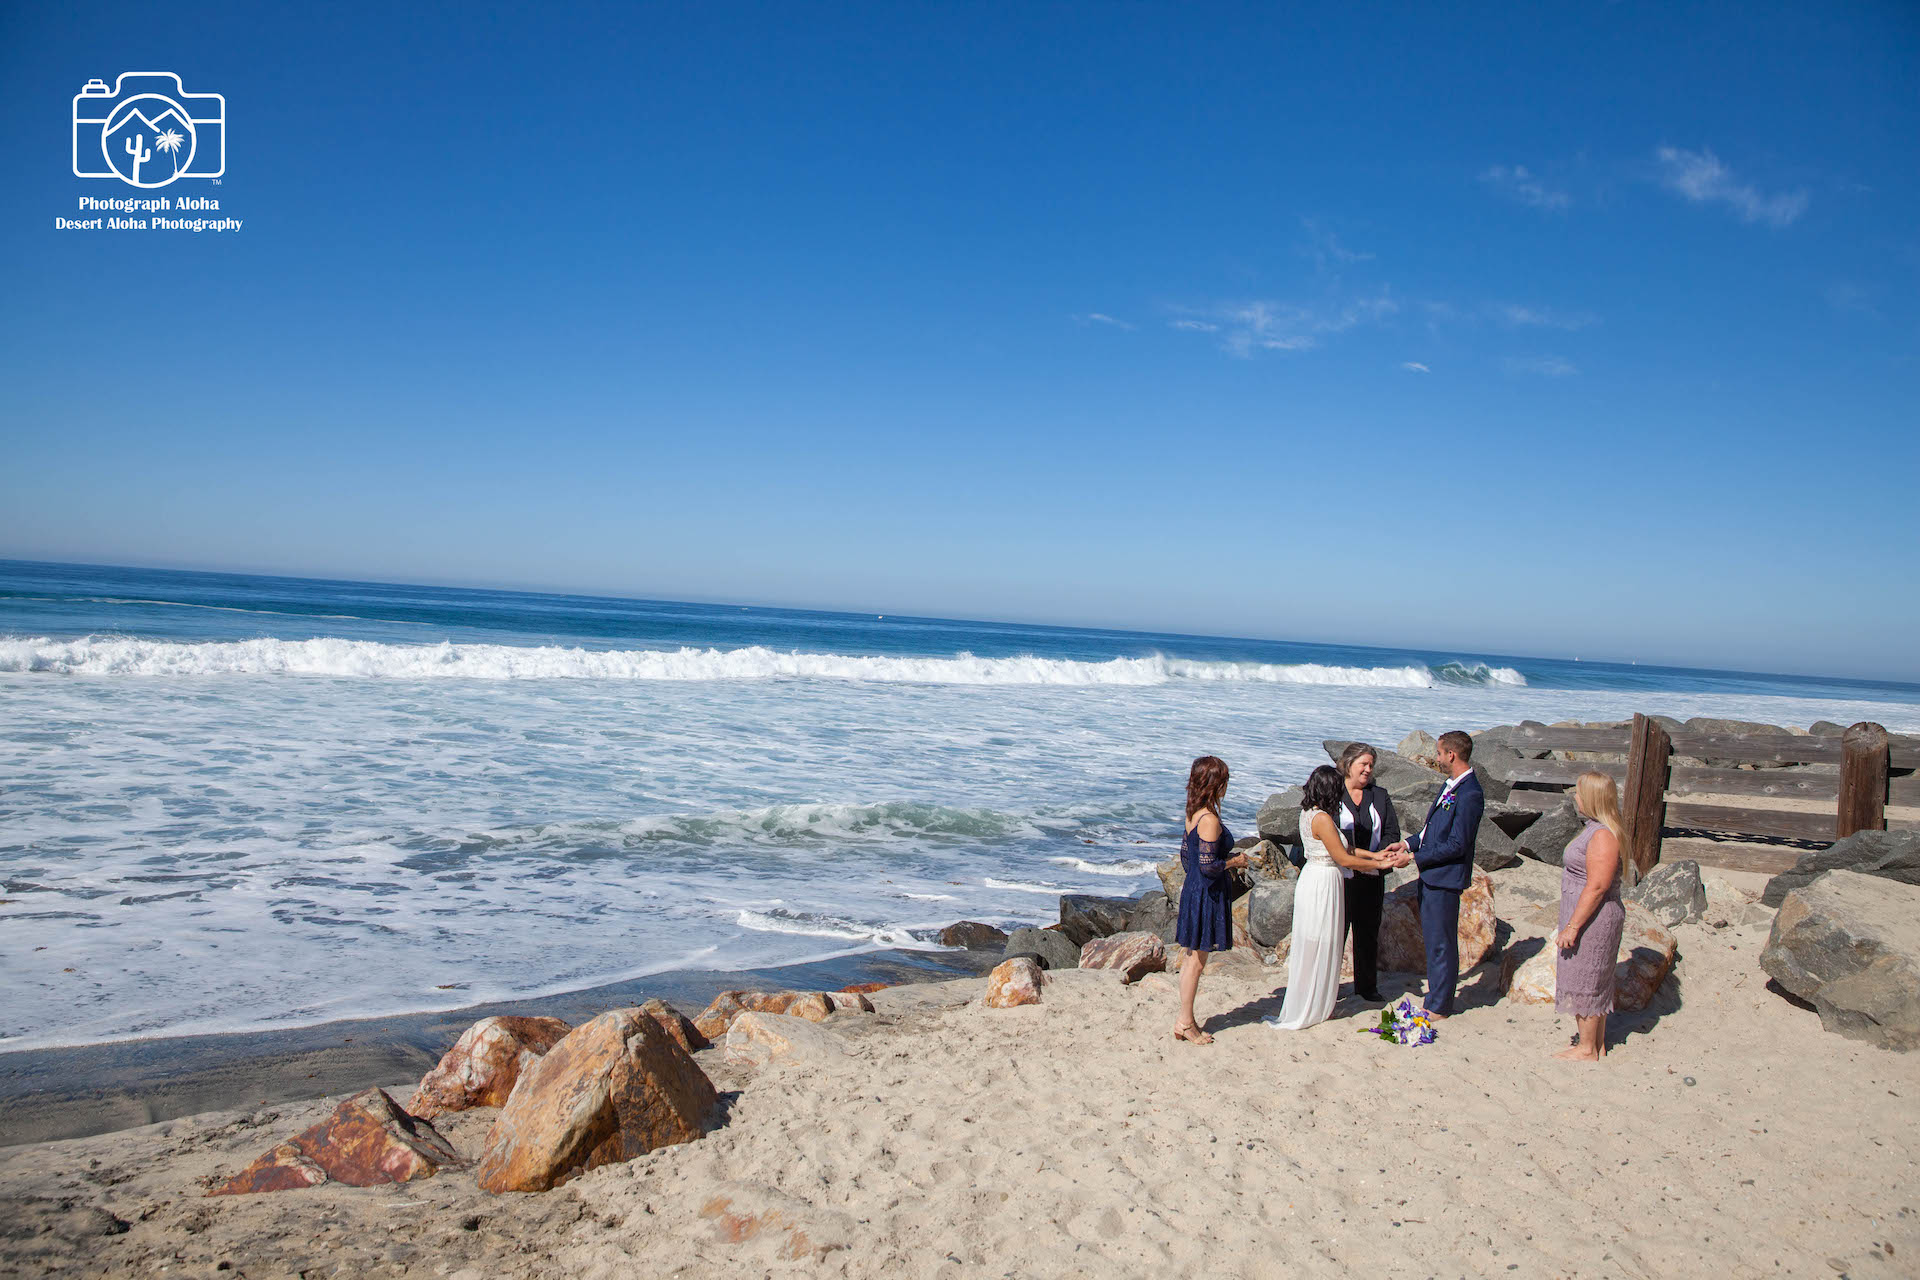 Elope to Oceanside - www.elopetooceanside.com | PHOTO: ©Photograph Aloha www.photographaloha.com - All Rights Reserved | Elope to Oceanside is a service of Elope to San Diego™ and Vows From The Heart